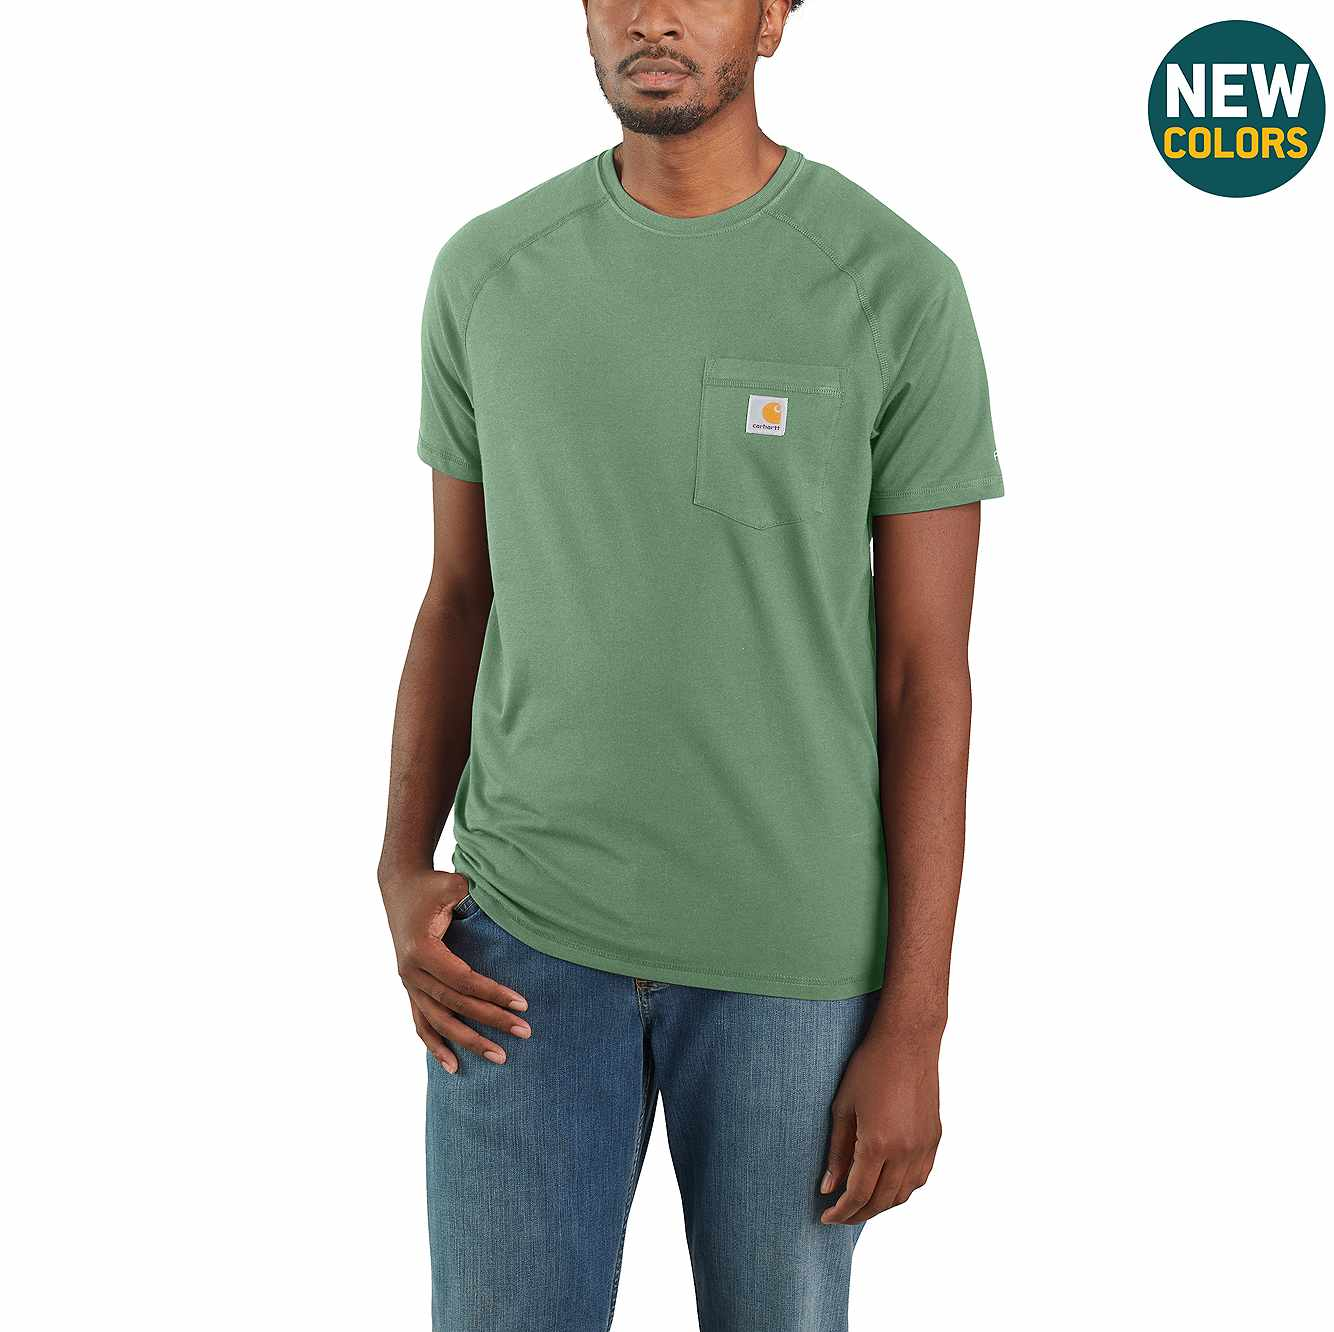 Picture of Carhartt Force® Cotton Delmont Short-Sleeve T-Shirt in Boreal